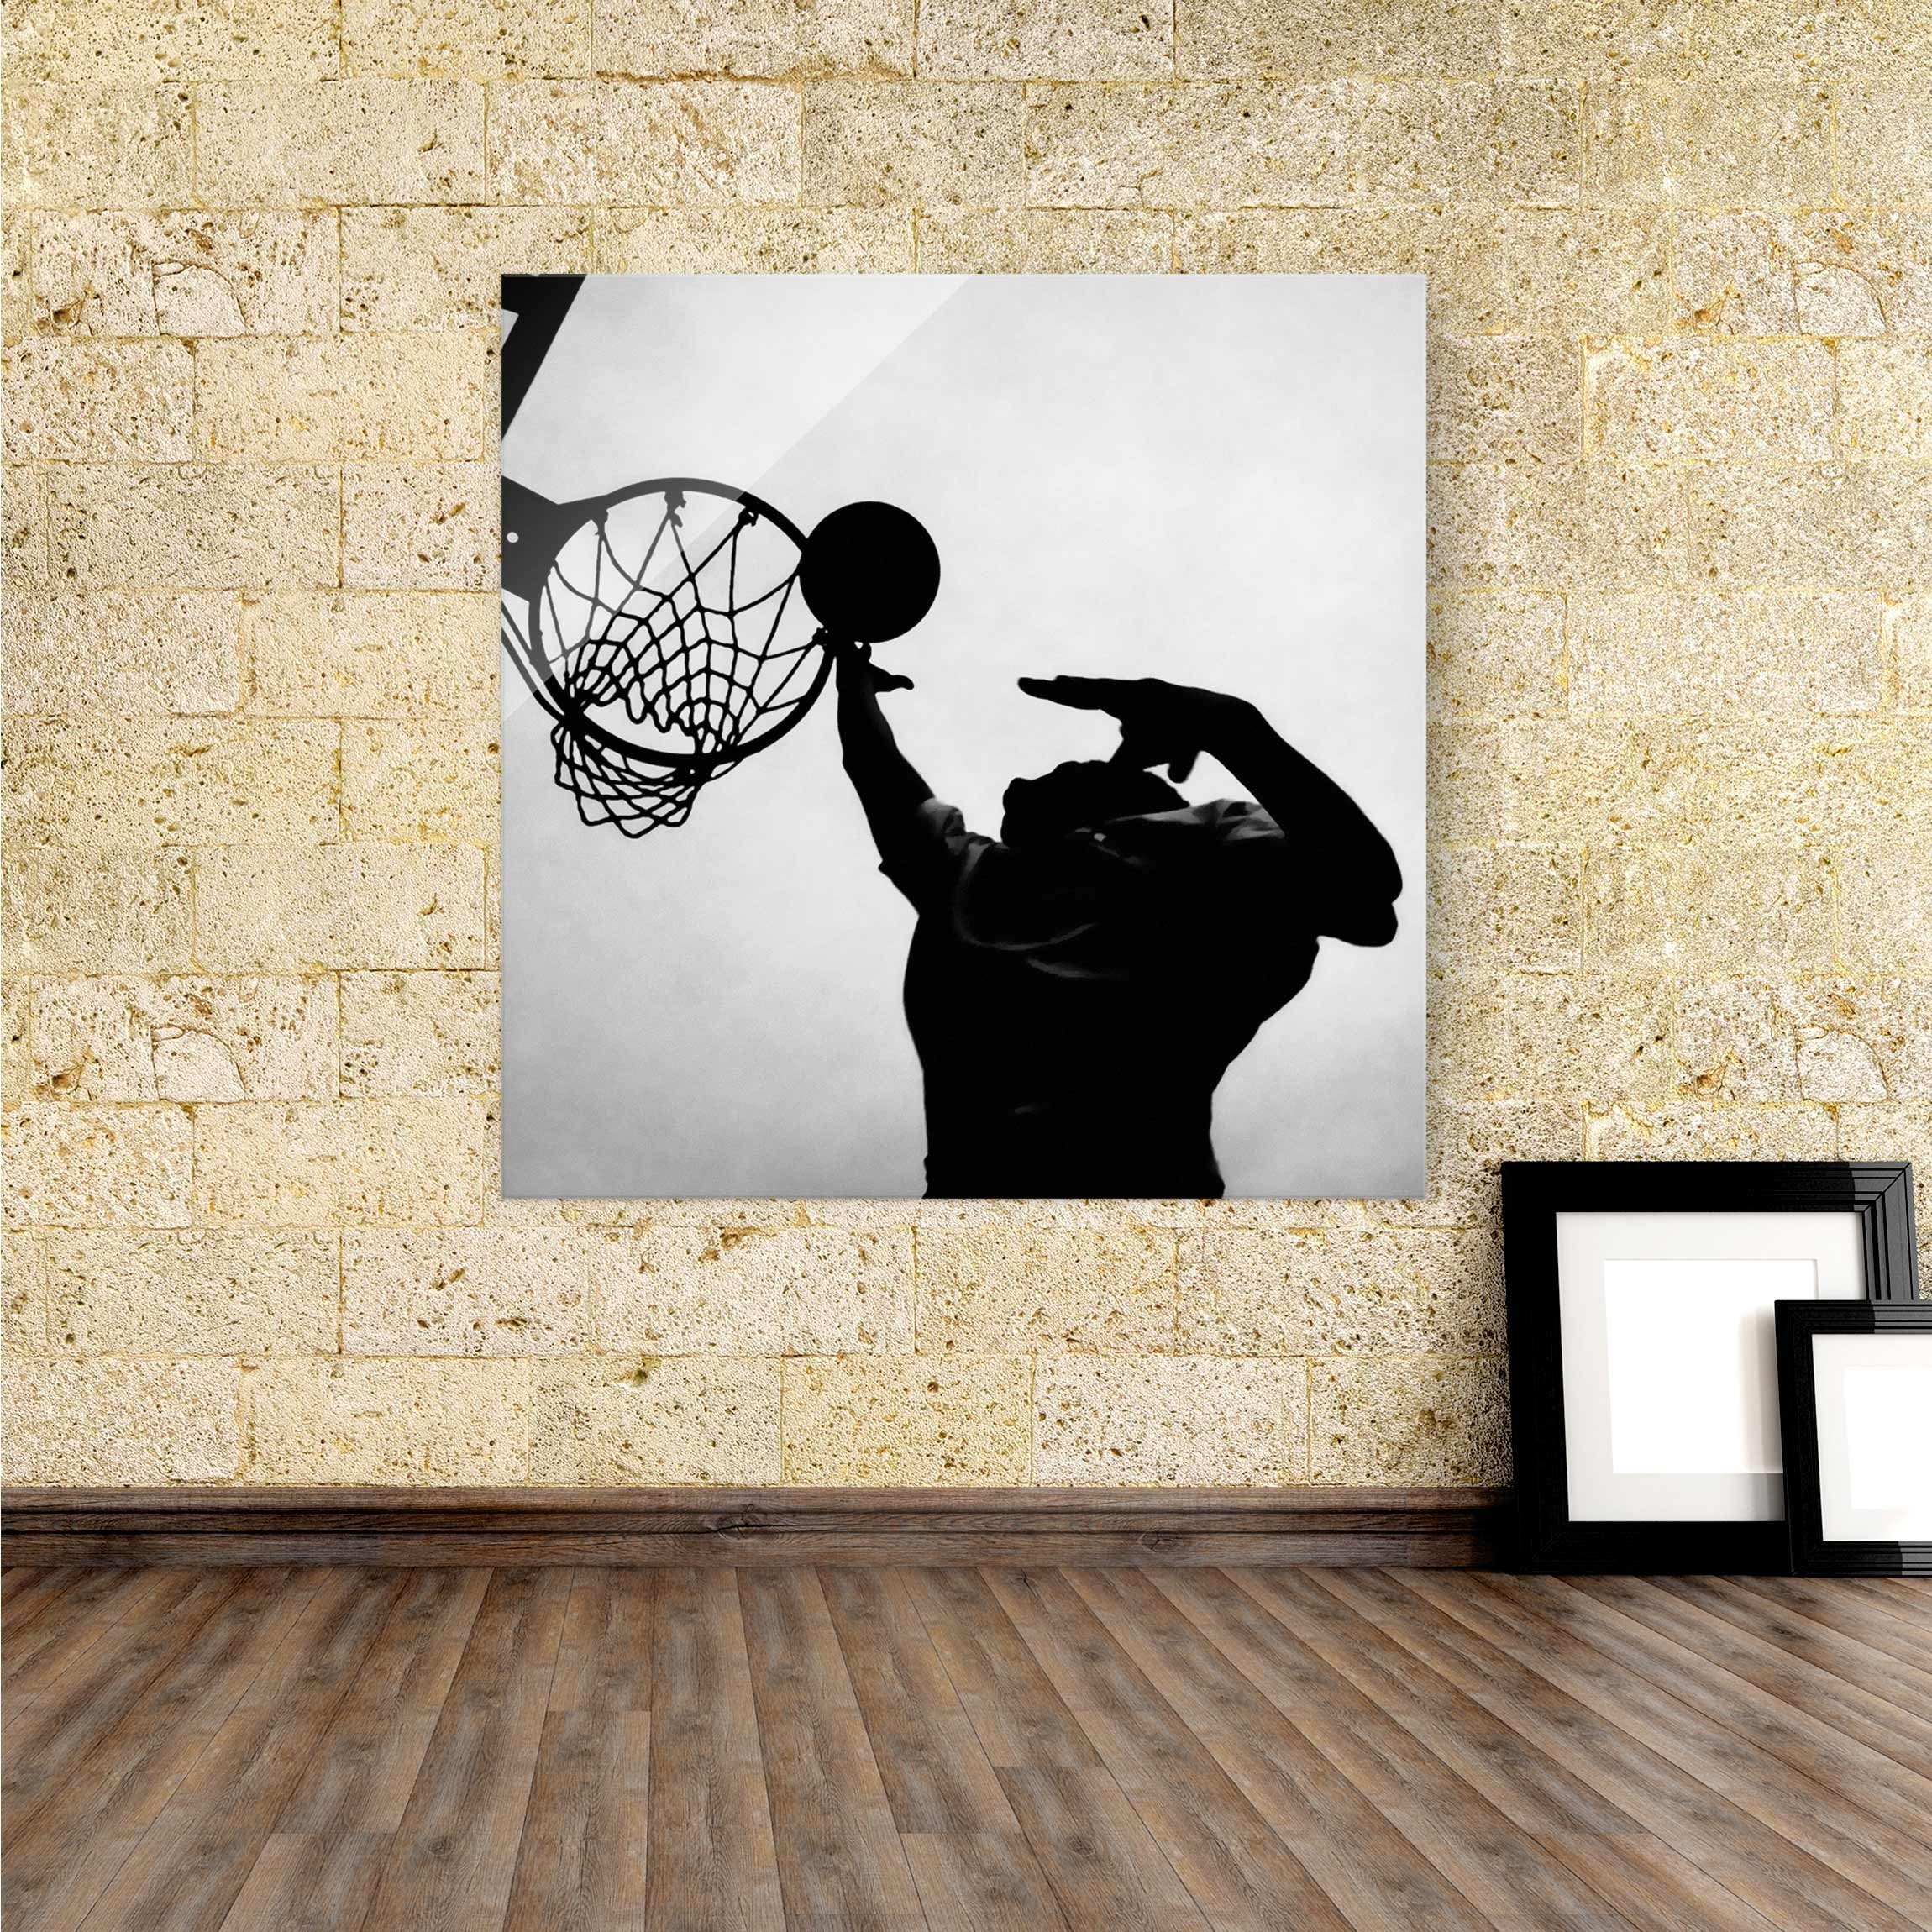 glasbild basketball schwarz wei. Black Bedroom Furniture Sets. Home Design Ideas